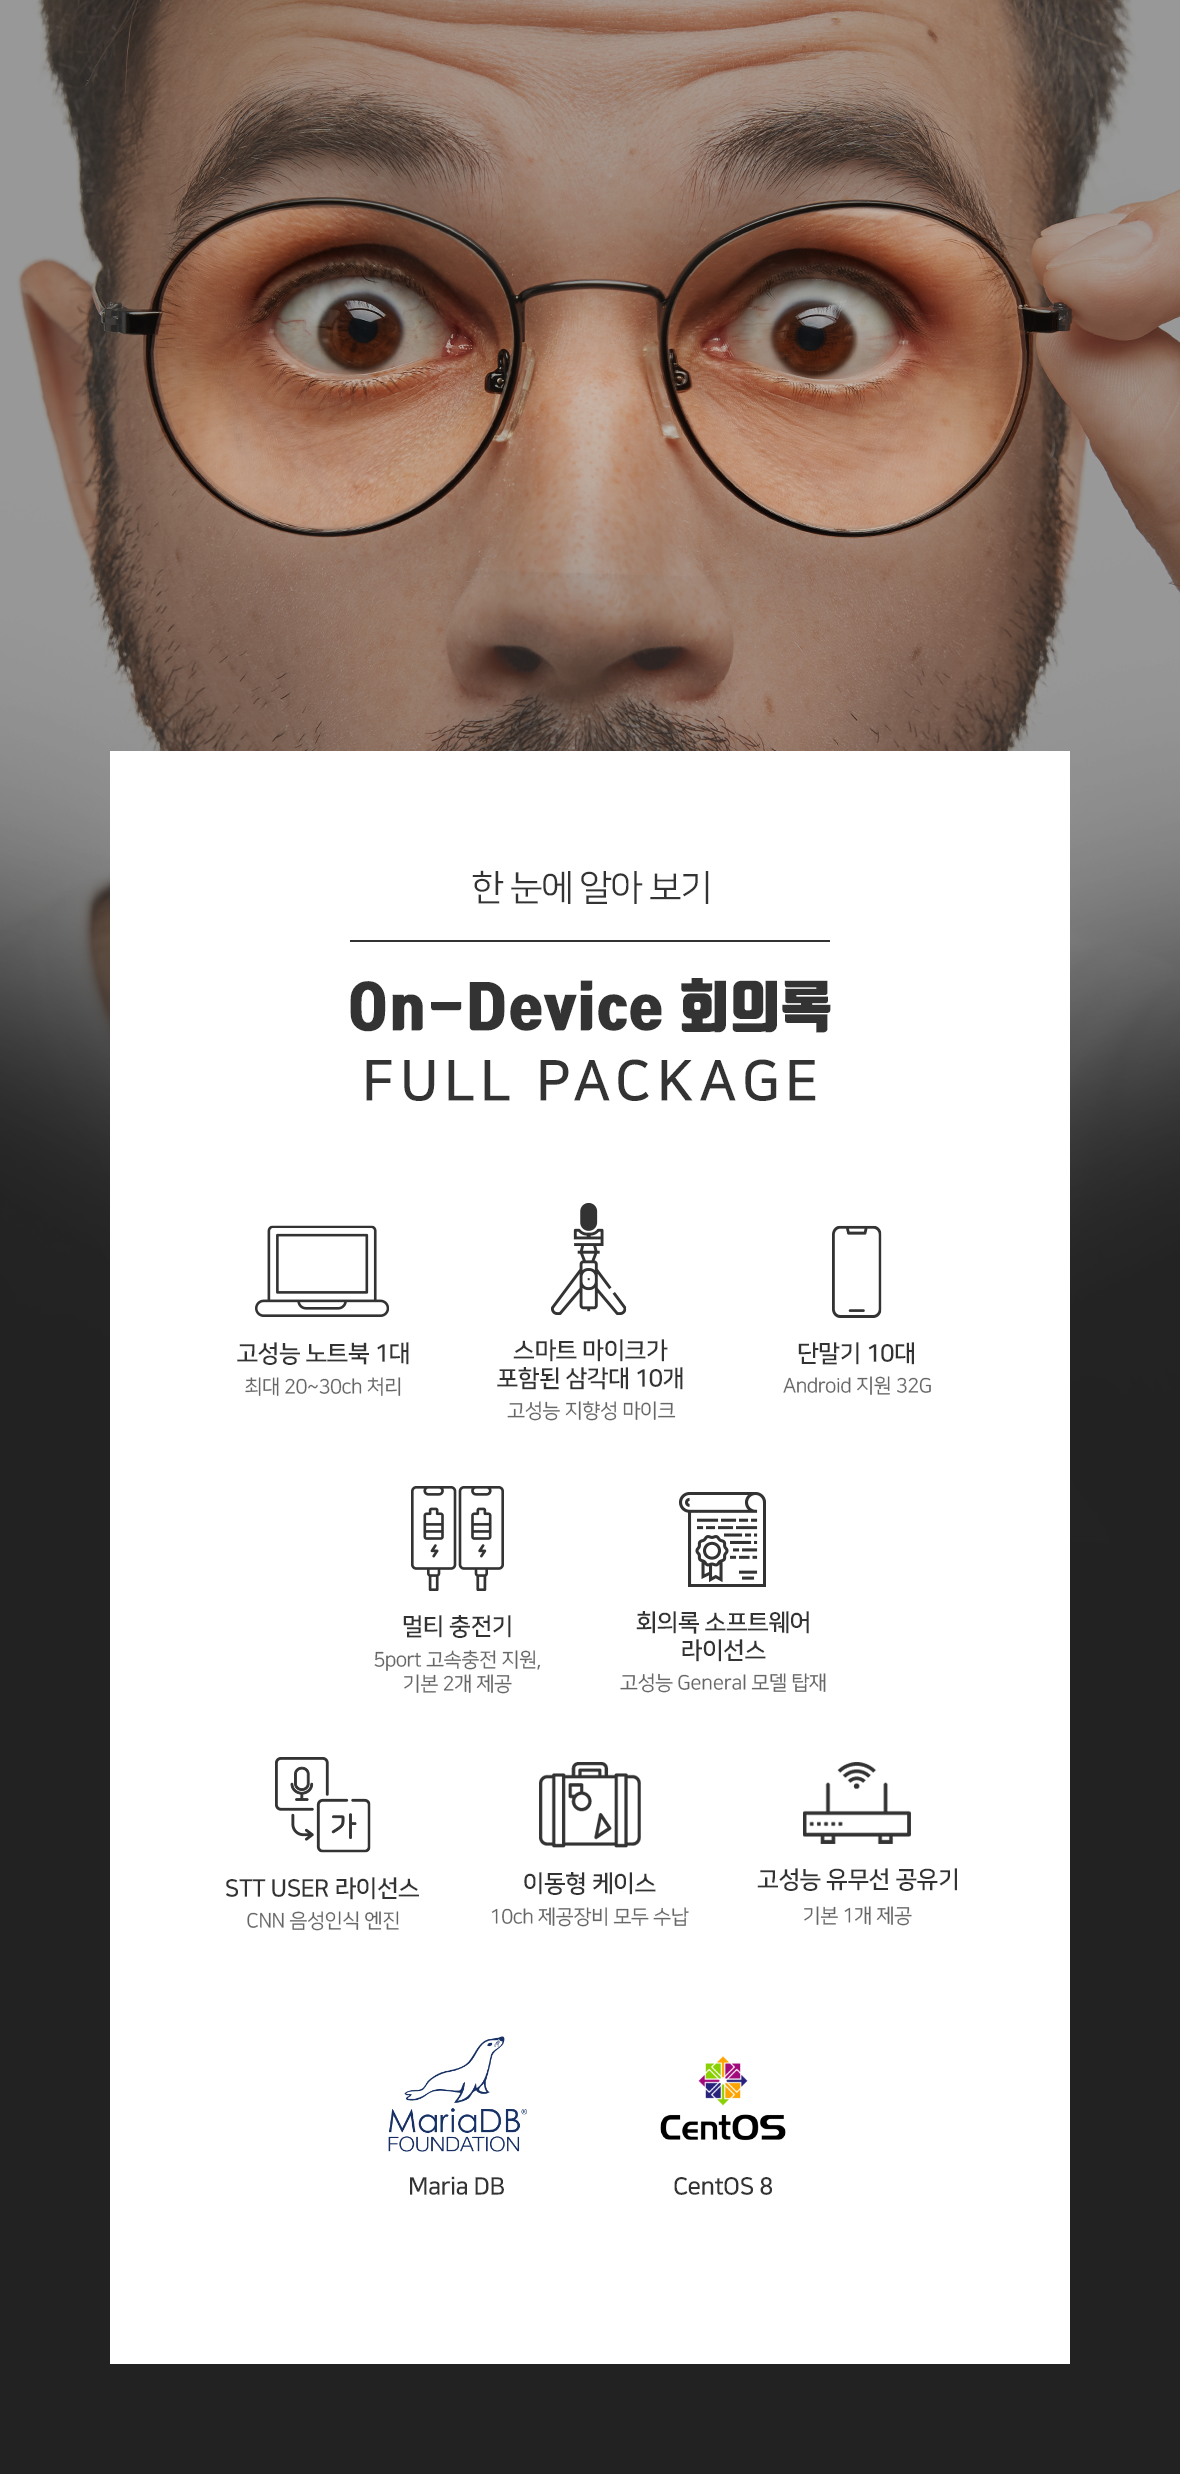 On-Device 회의록 FULL PACKAGE